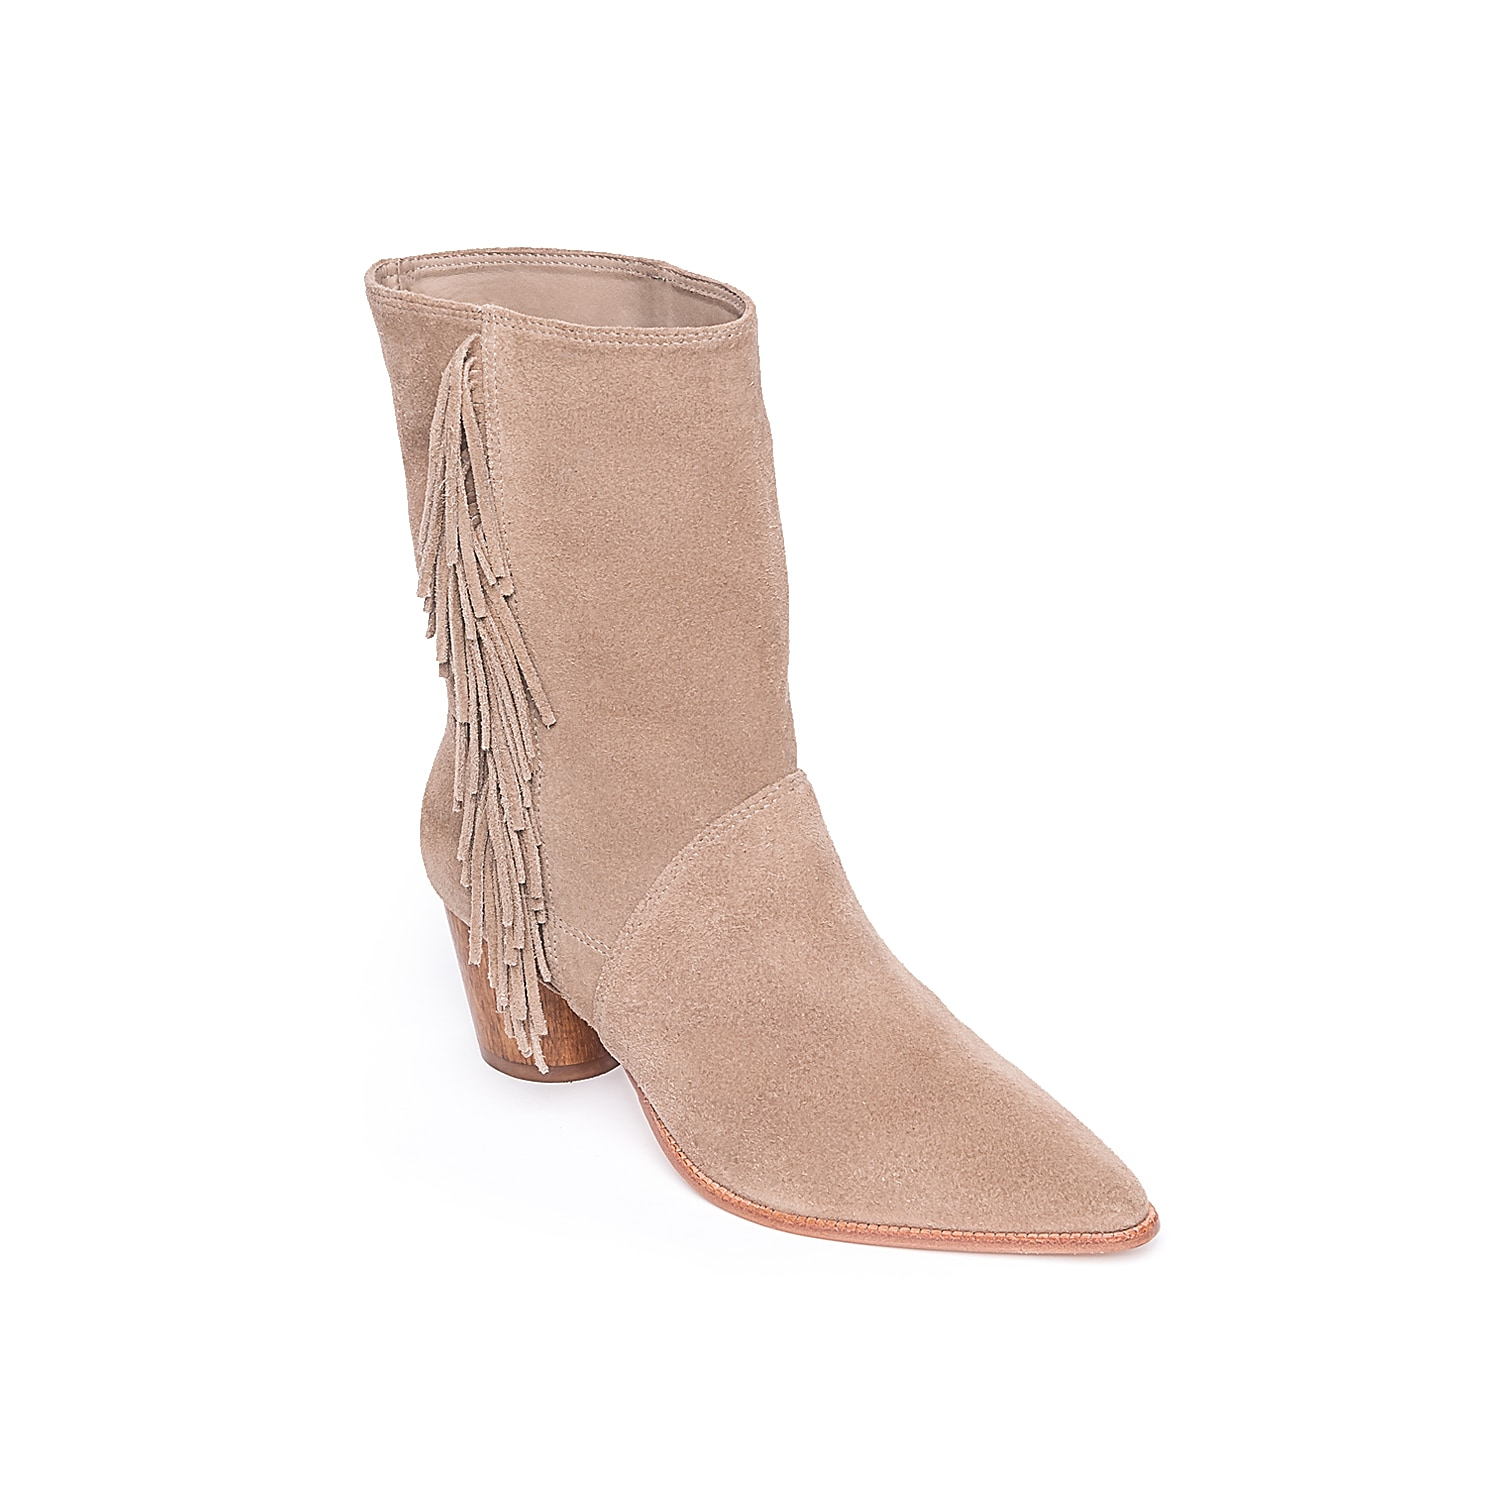 Show off your boho chic style with the Felix bootie from Bernardo. A bold fringe accent complements the wood block heel for the perfect amount of western appeal.